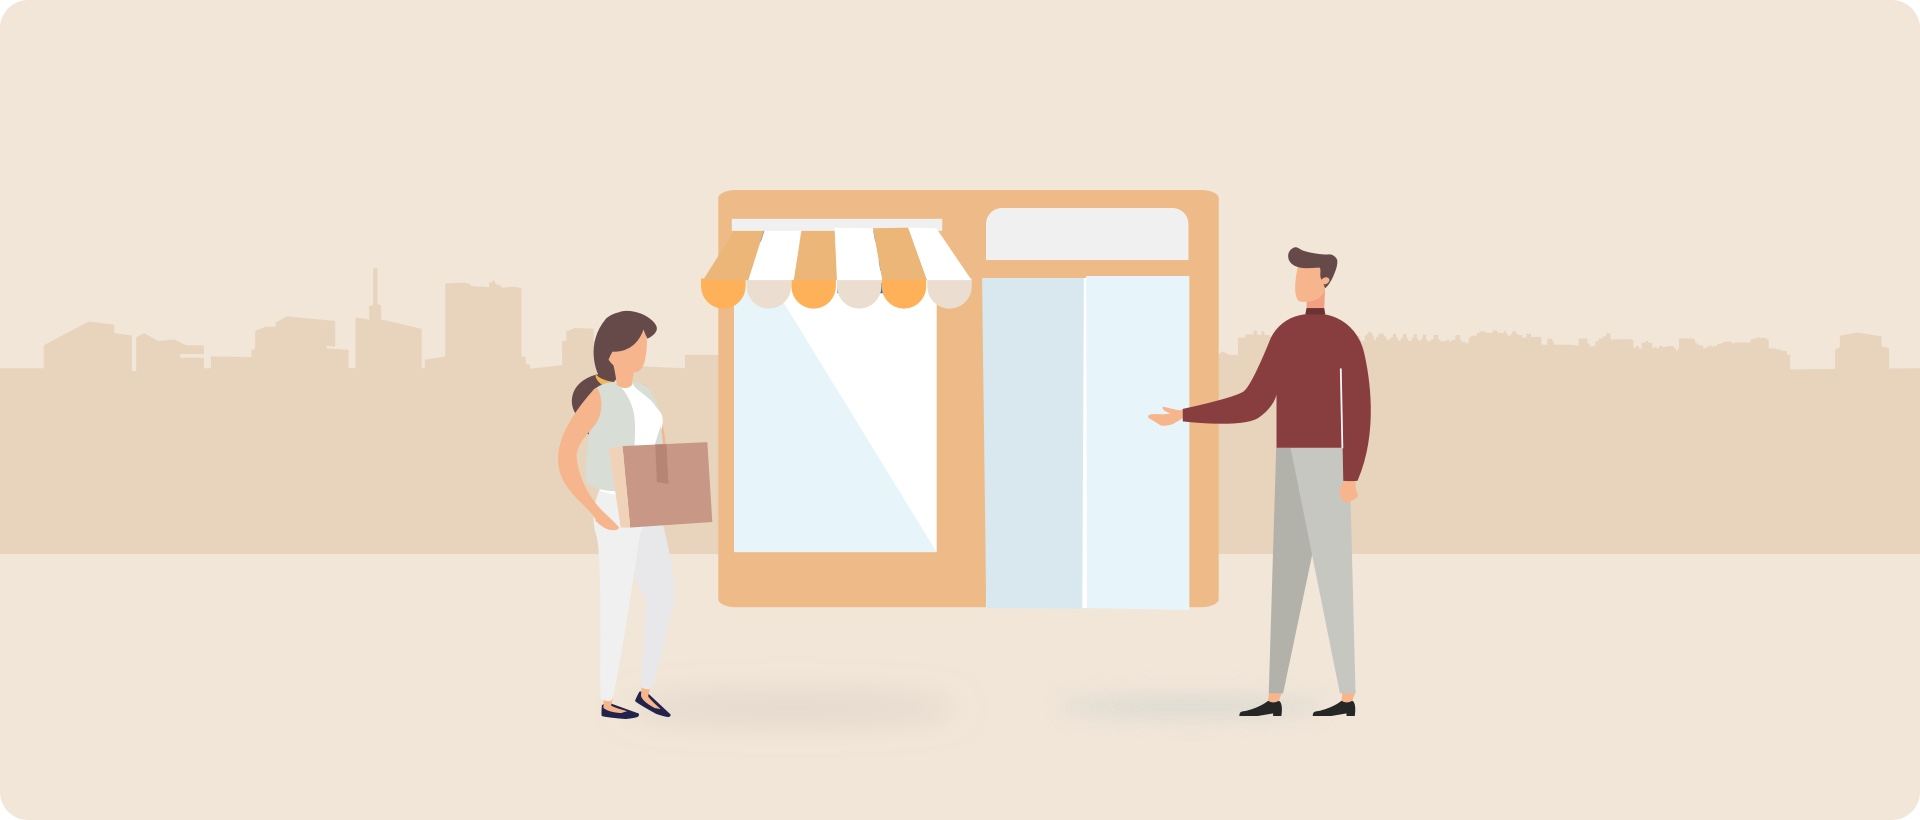 7 Simple Steps To Successful Retail Onboarding - Harver